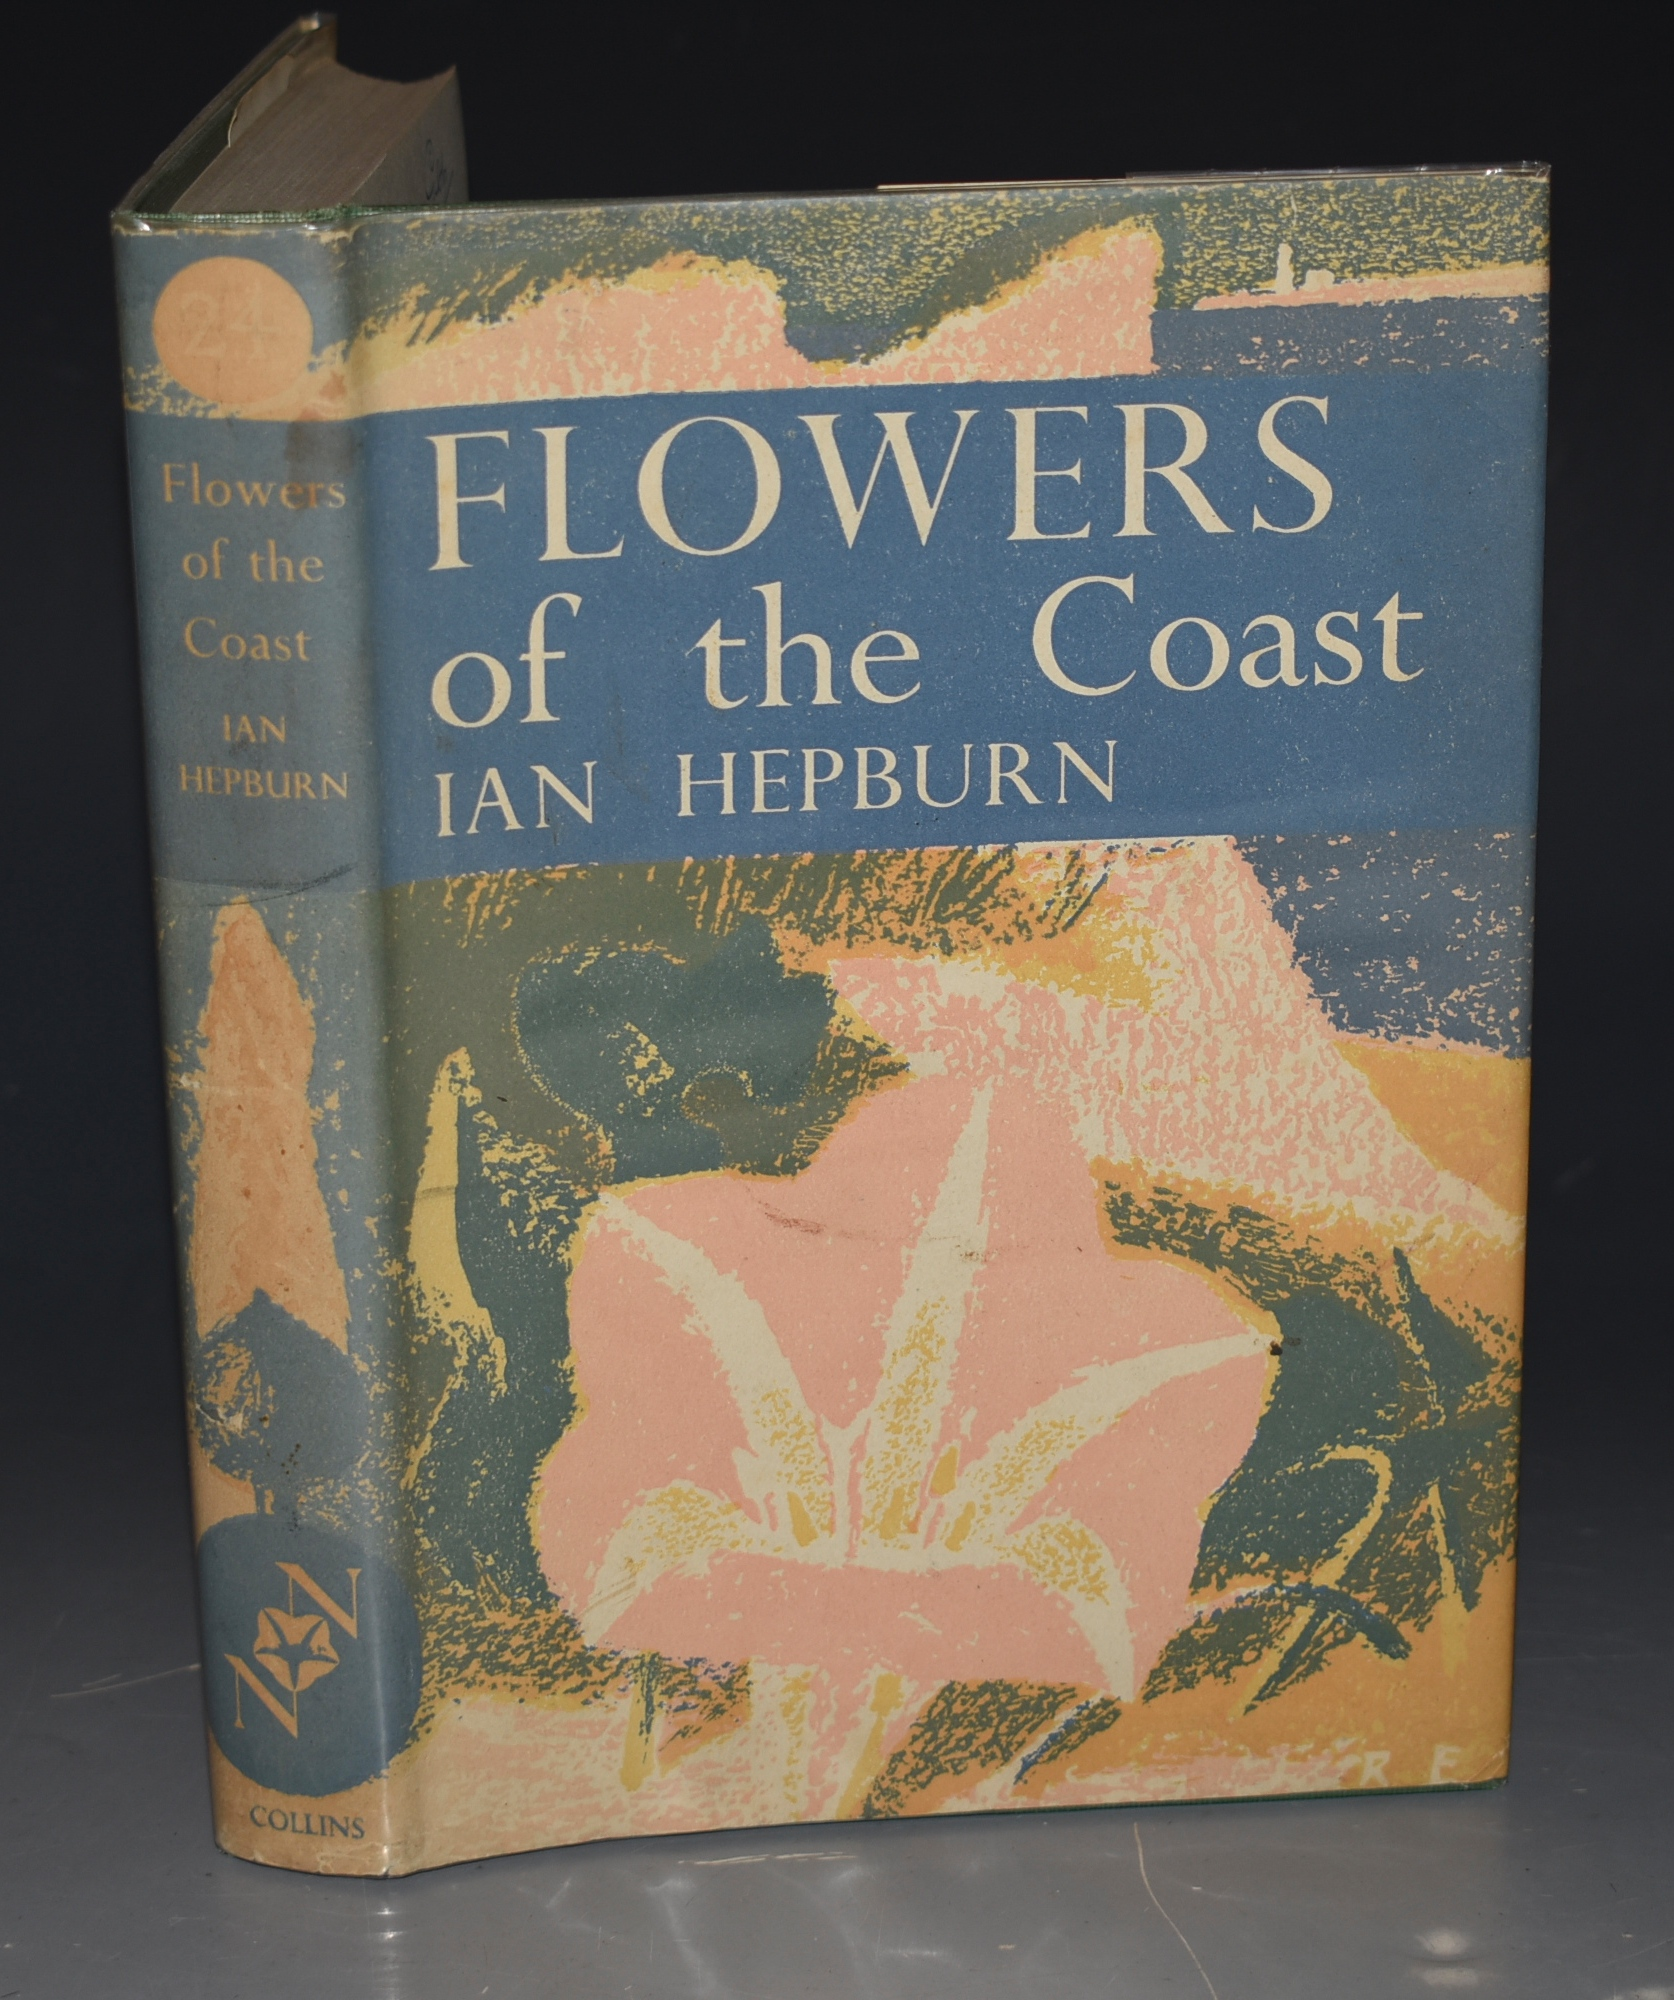 Image for Flowers of the Coast With a chapter on Coastal Physiography by J.A.Steers. With 17 colour photographs by John Markham and others, 43 black and white photographs and 14 line drawings and maps.